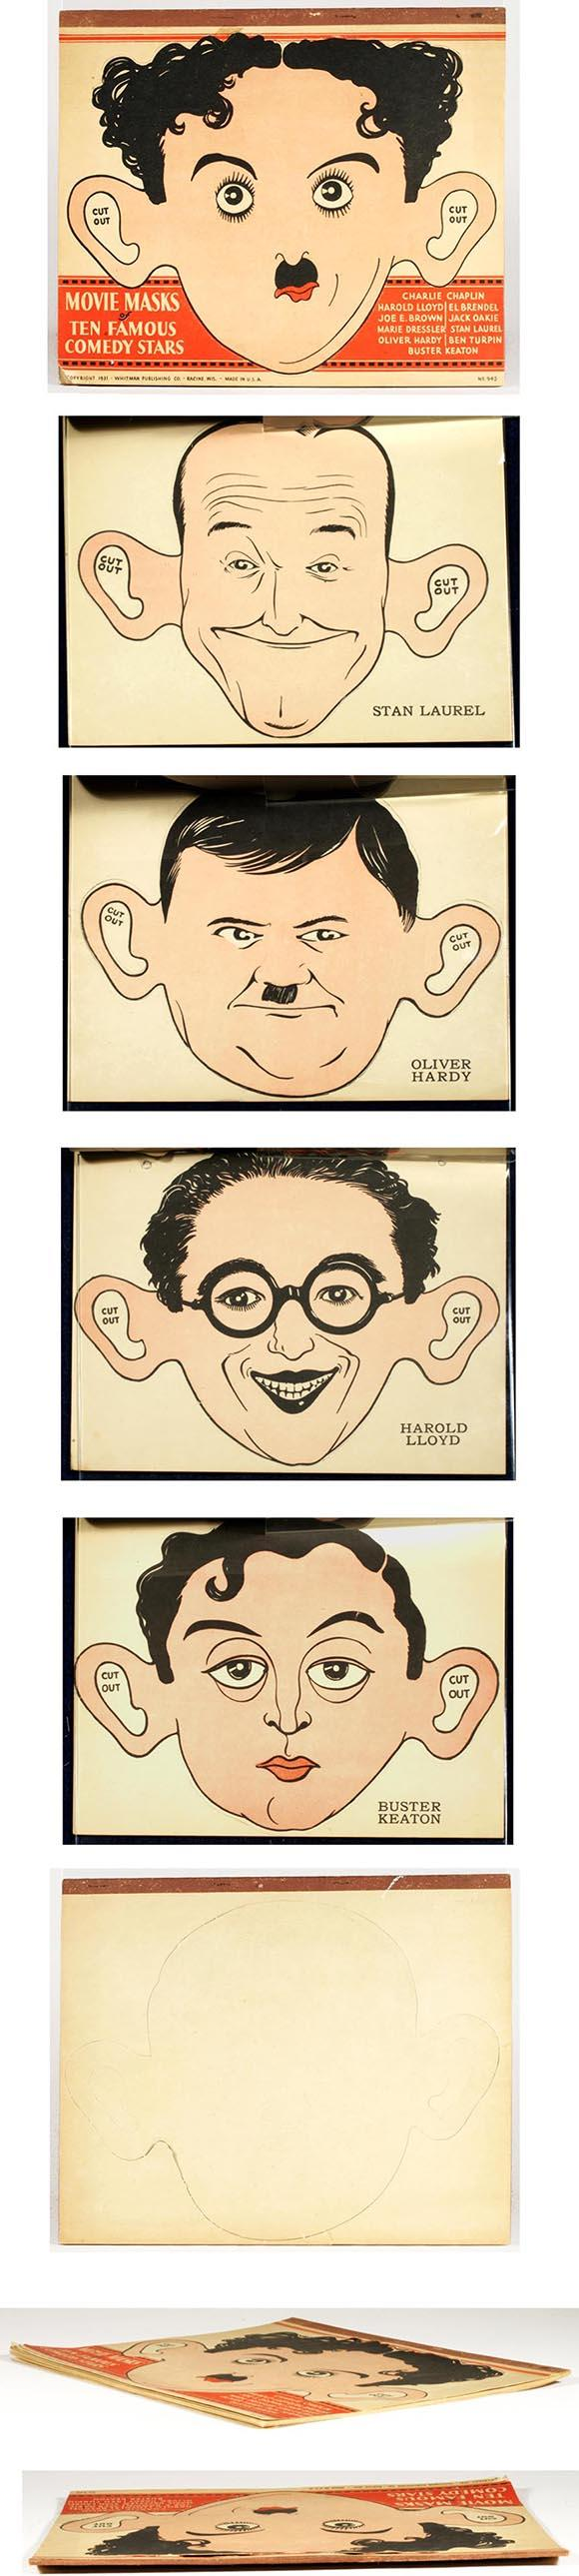 1931 Whitman, Movie Masks of 10 Famous Comedy Stars